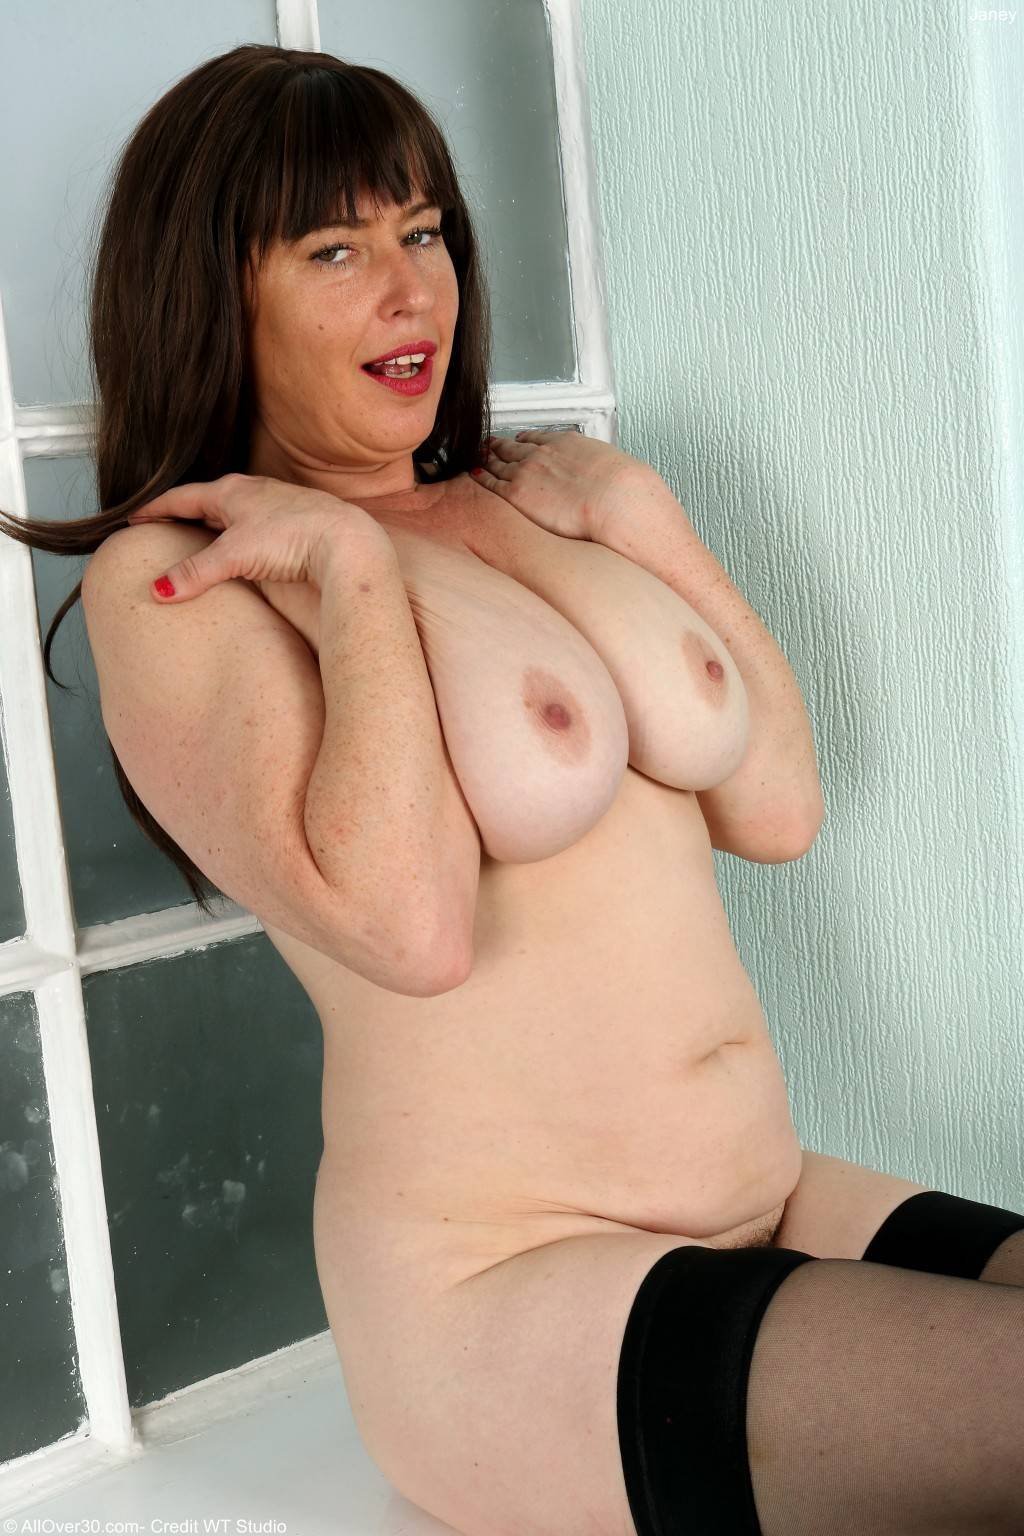 Busty hairy Janey playing with herself at AllOver30